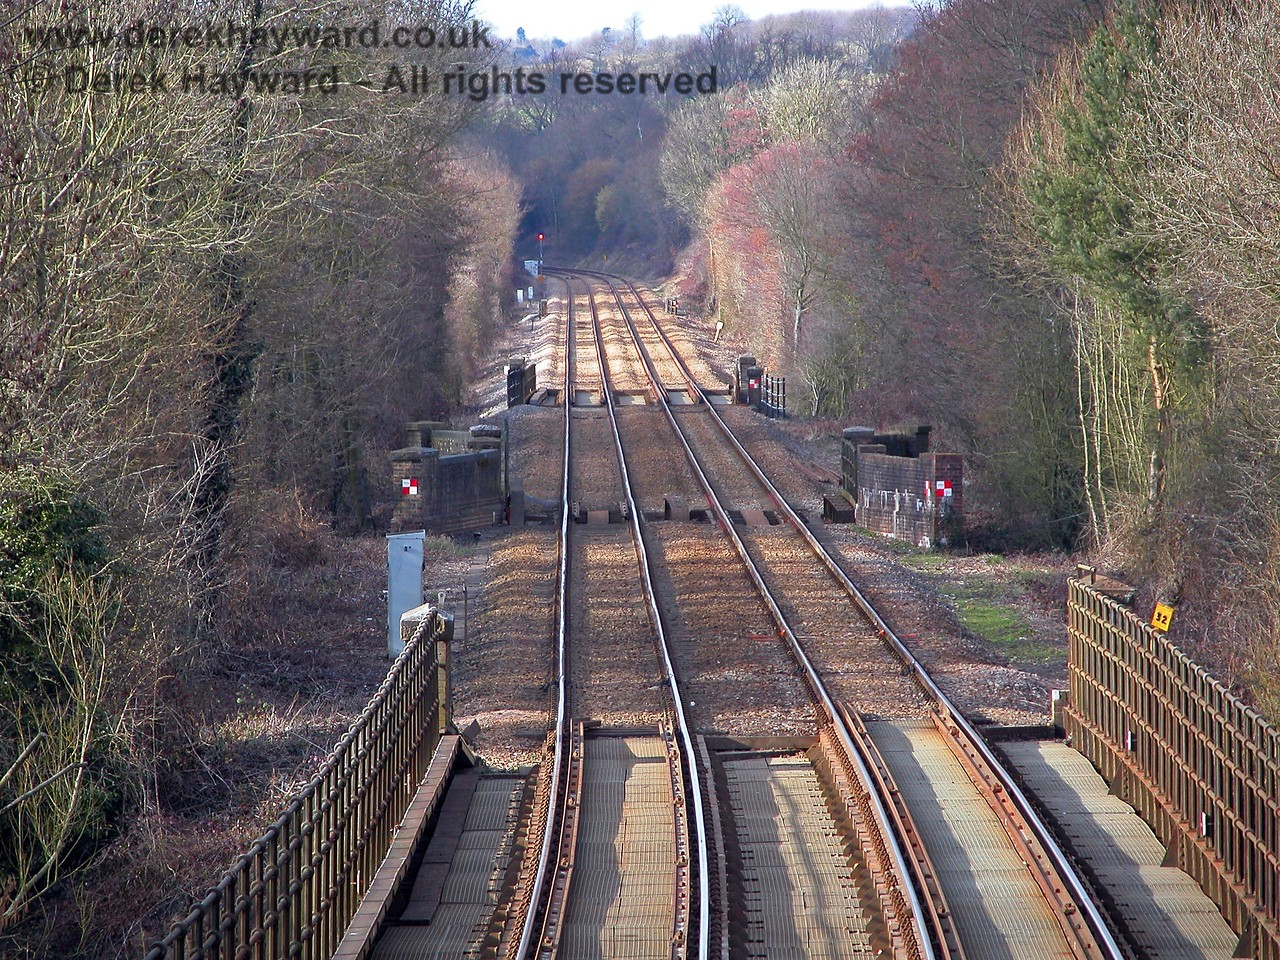 A view north with a longer lens shows, in the far distance, the red signal protecting the entrance to the single line section that starts north of Ashurst station and continues to Hever. The SPAD signal and Willetts Bridge (previously featured) are out of sight around the bend. 19.03.2006